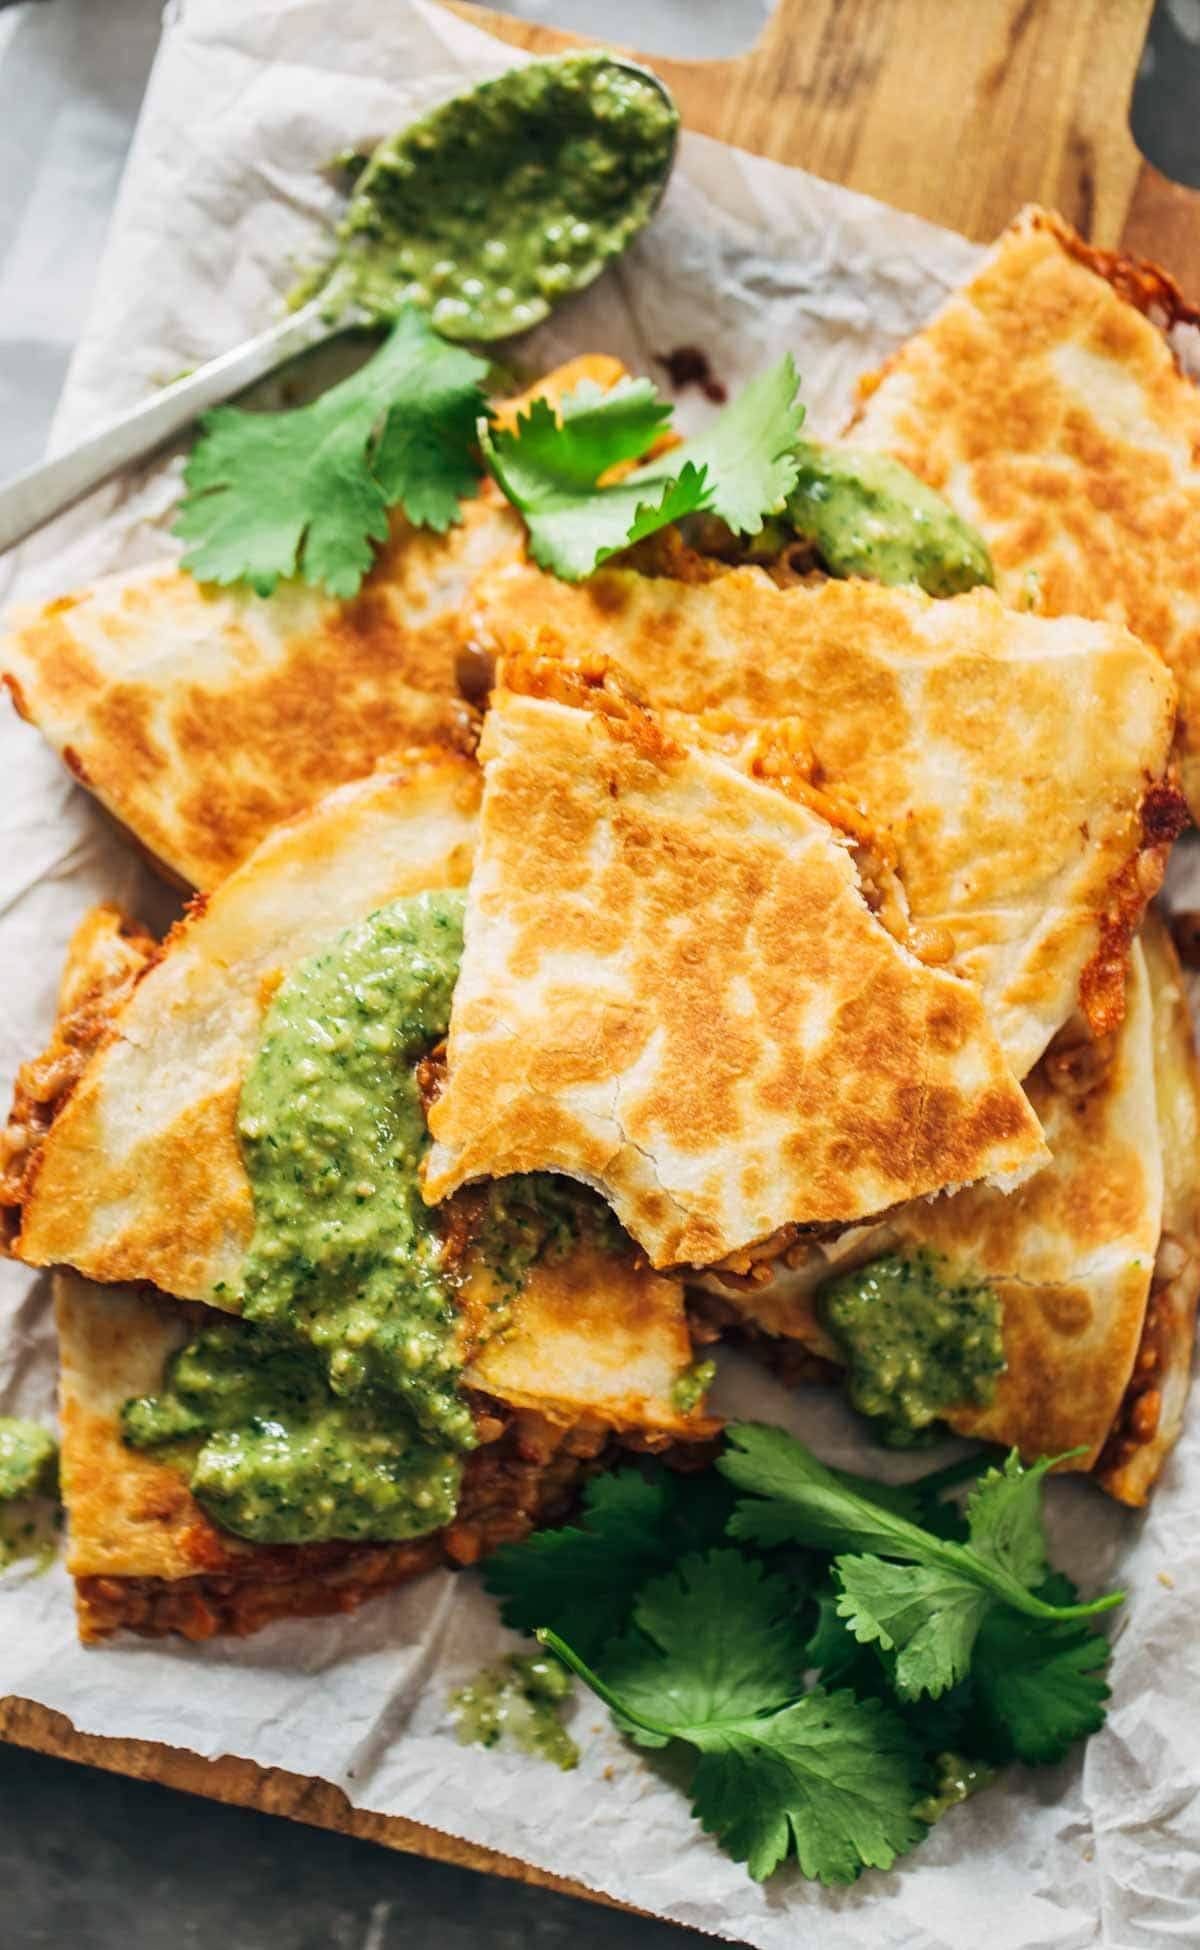 Quick & Easy Lentil Quesadillas Recipe - with melted Pepperjack cheese and a spicy lentil and brown rice filling. So easy and SO good! | pinchofyum.com